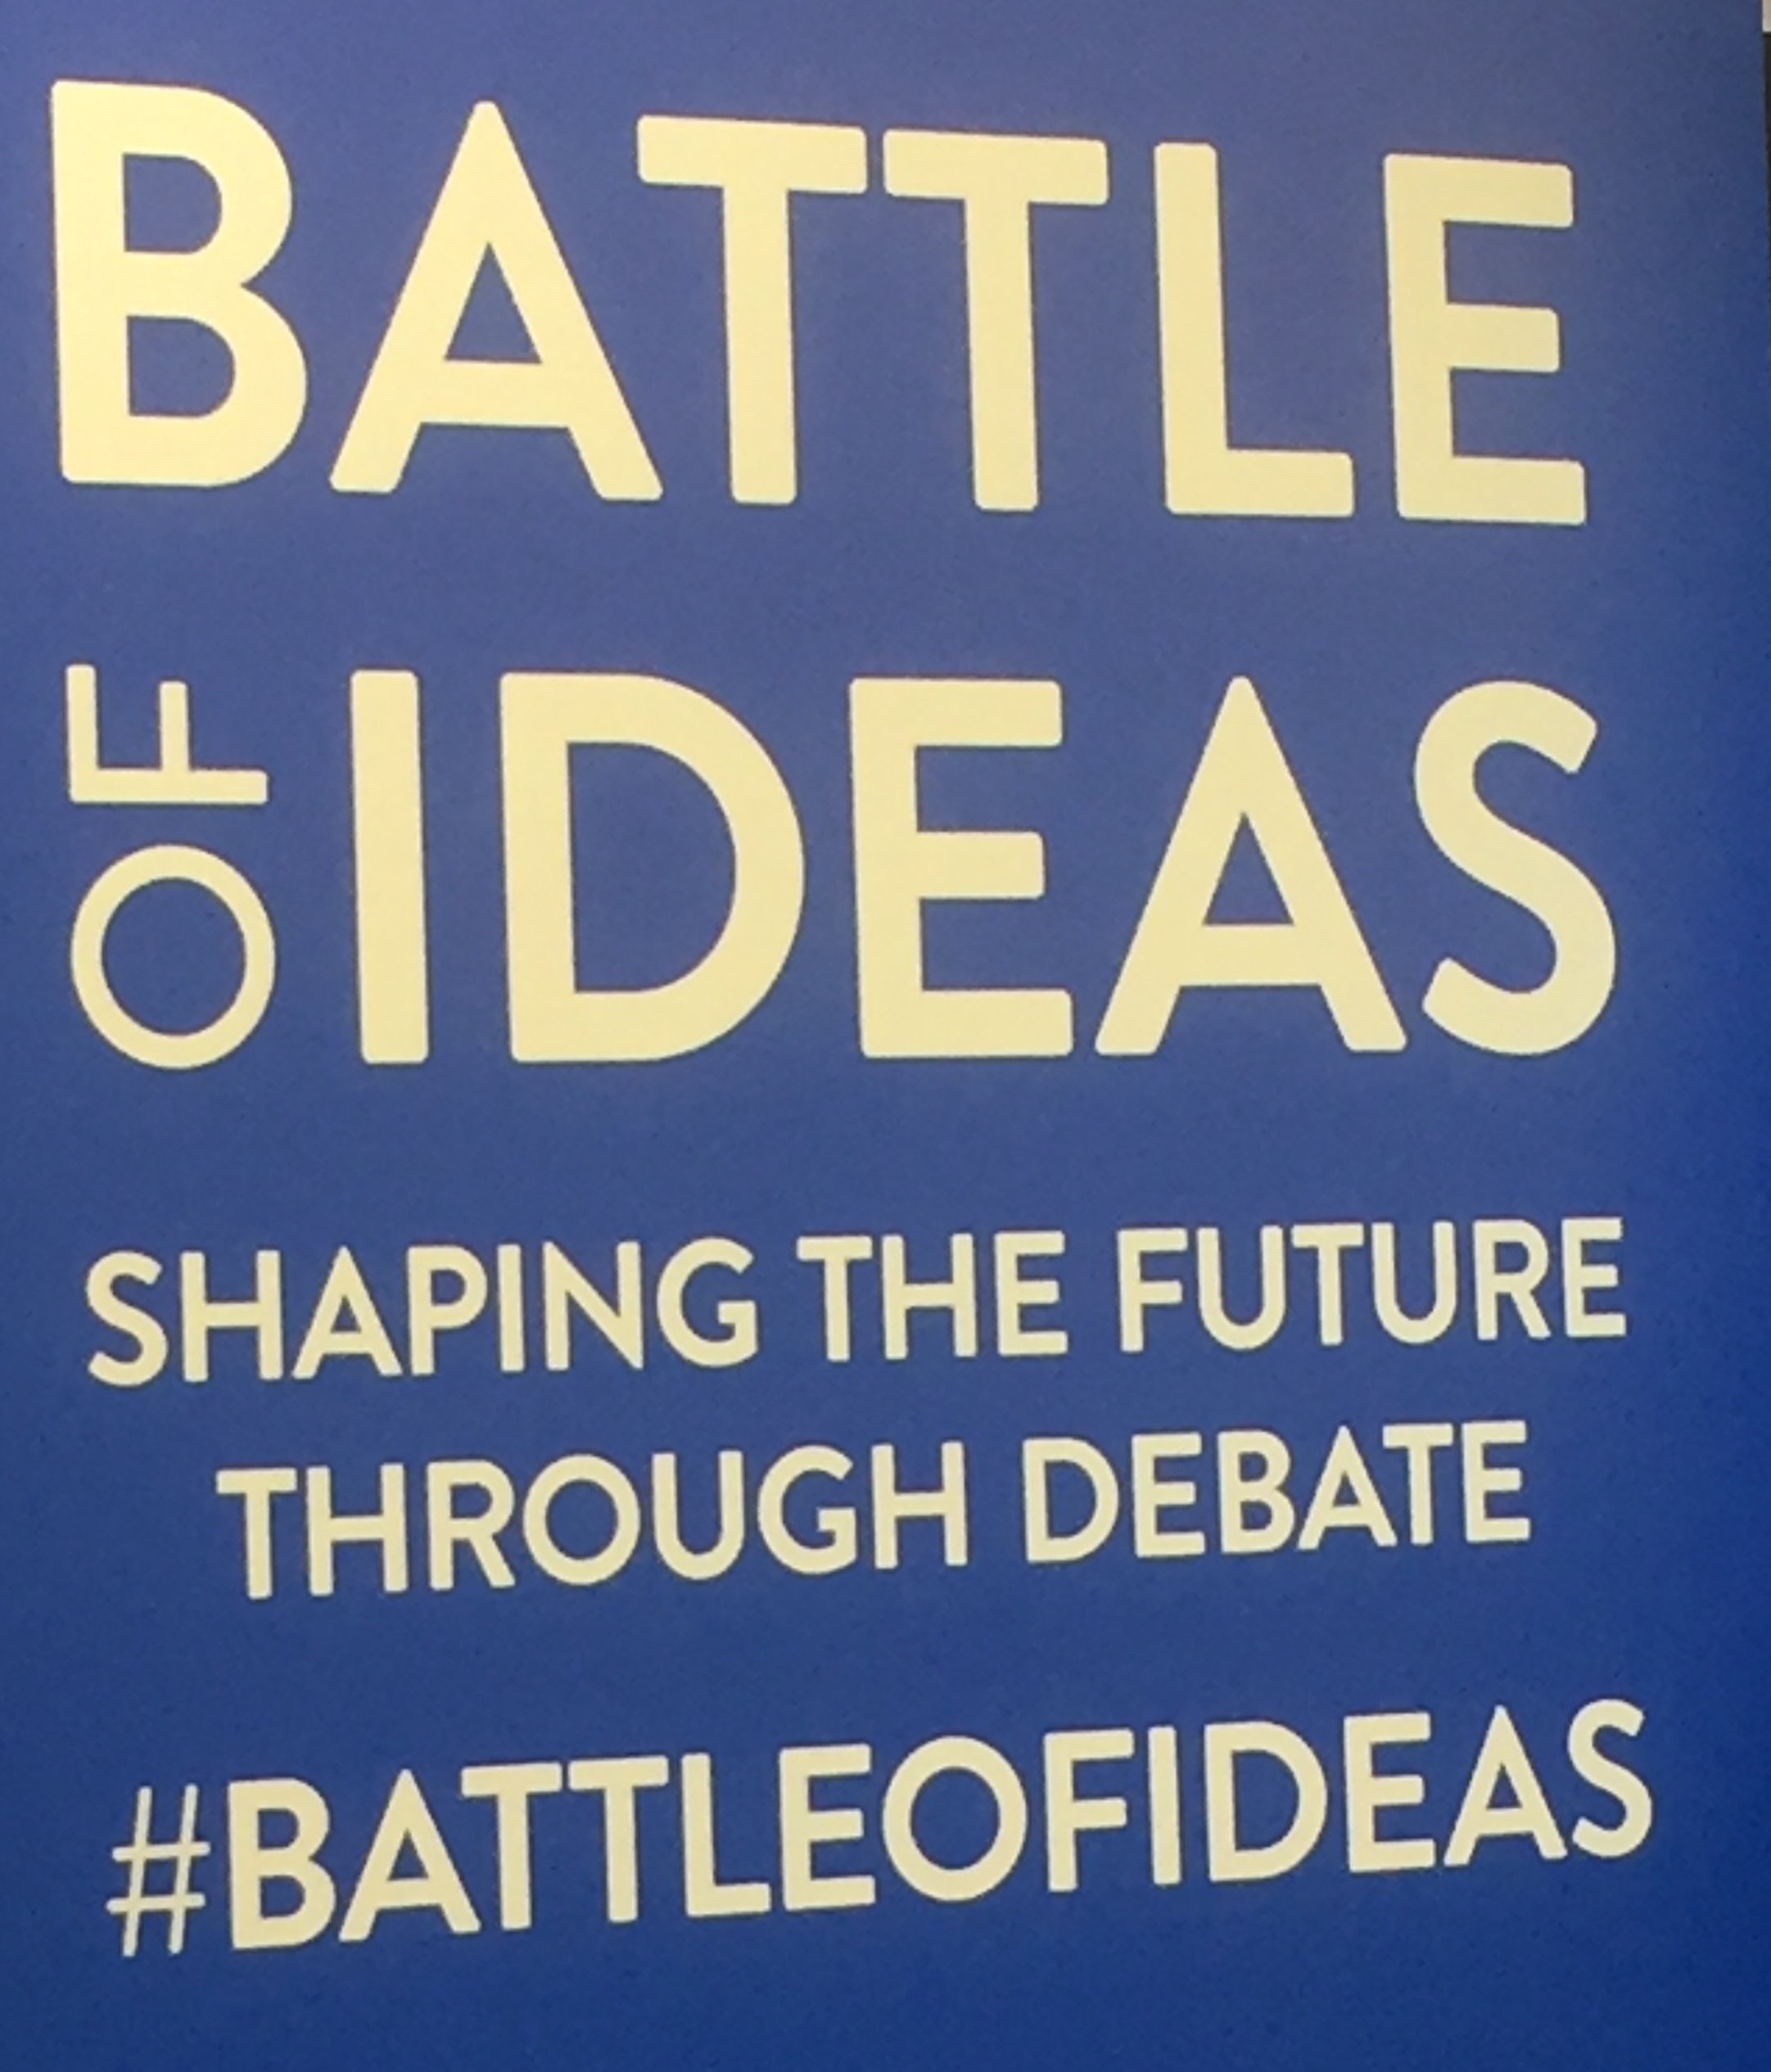 Battle_of_Ideas151018.JPG